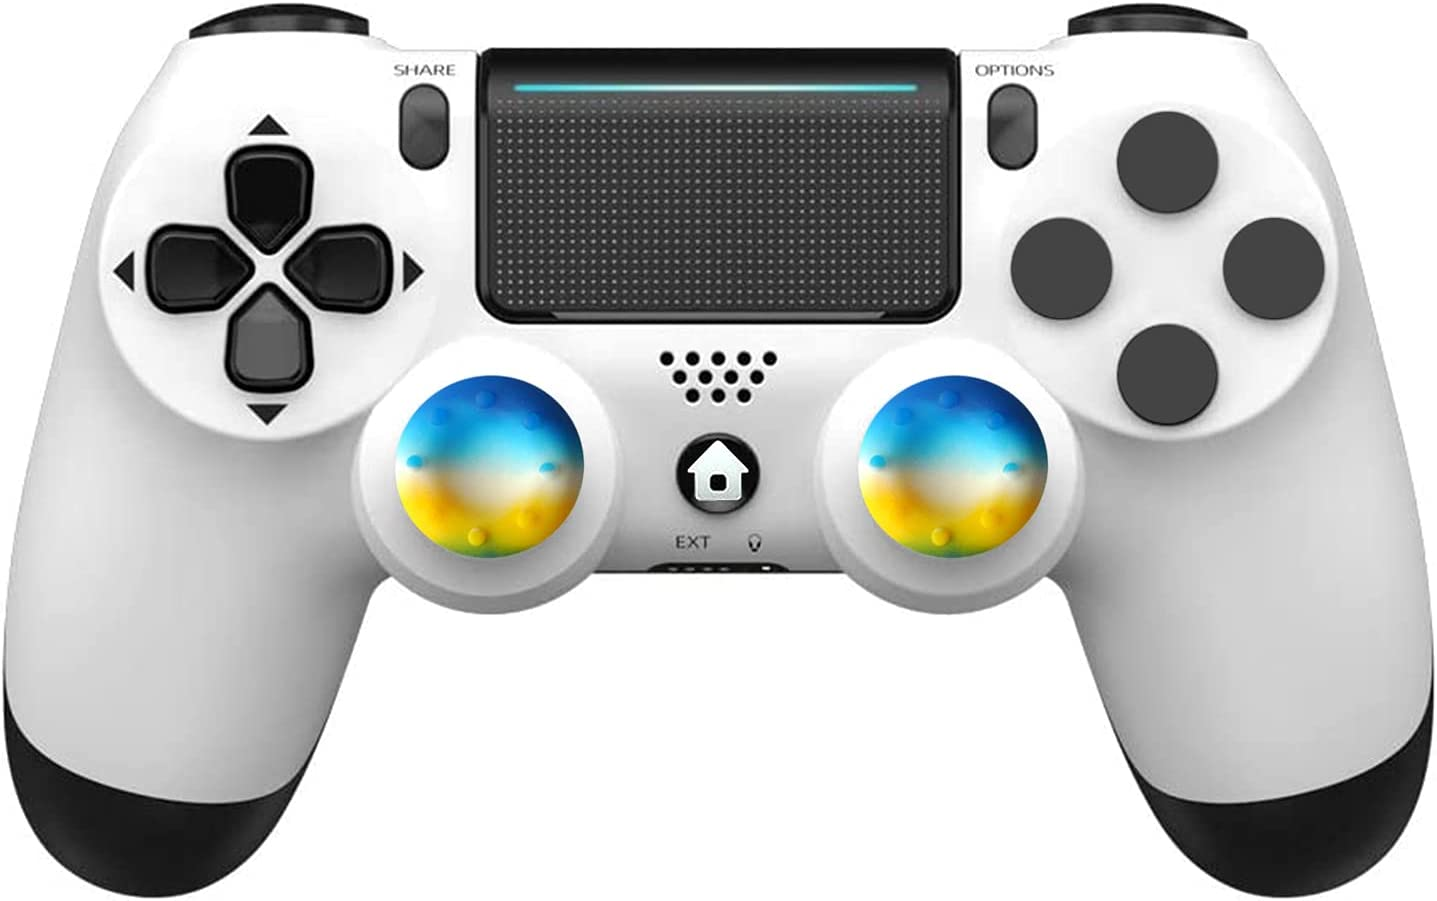 Wireless Controller for PS-4, Game Joystick Remote for PS-4 Controller, with Audio Jack, Double Vibration, Six-Axis Motion Control, Touchpad, for PS-4/Slim/Pro Console